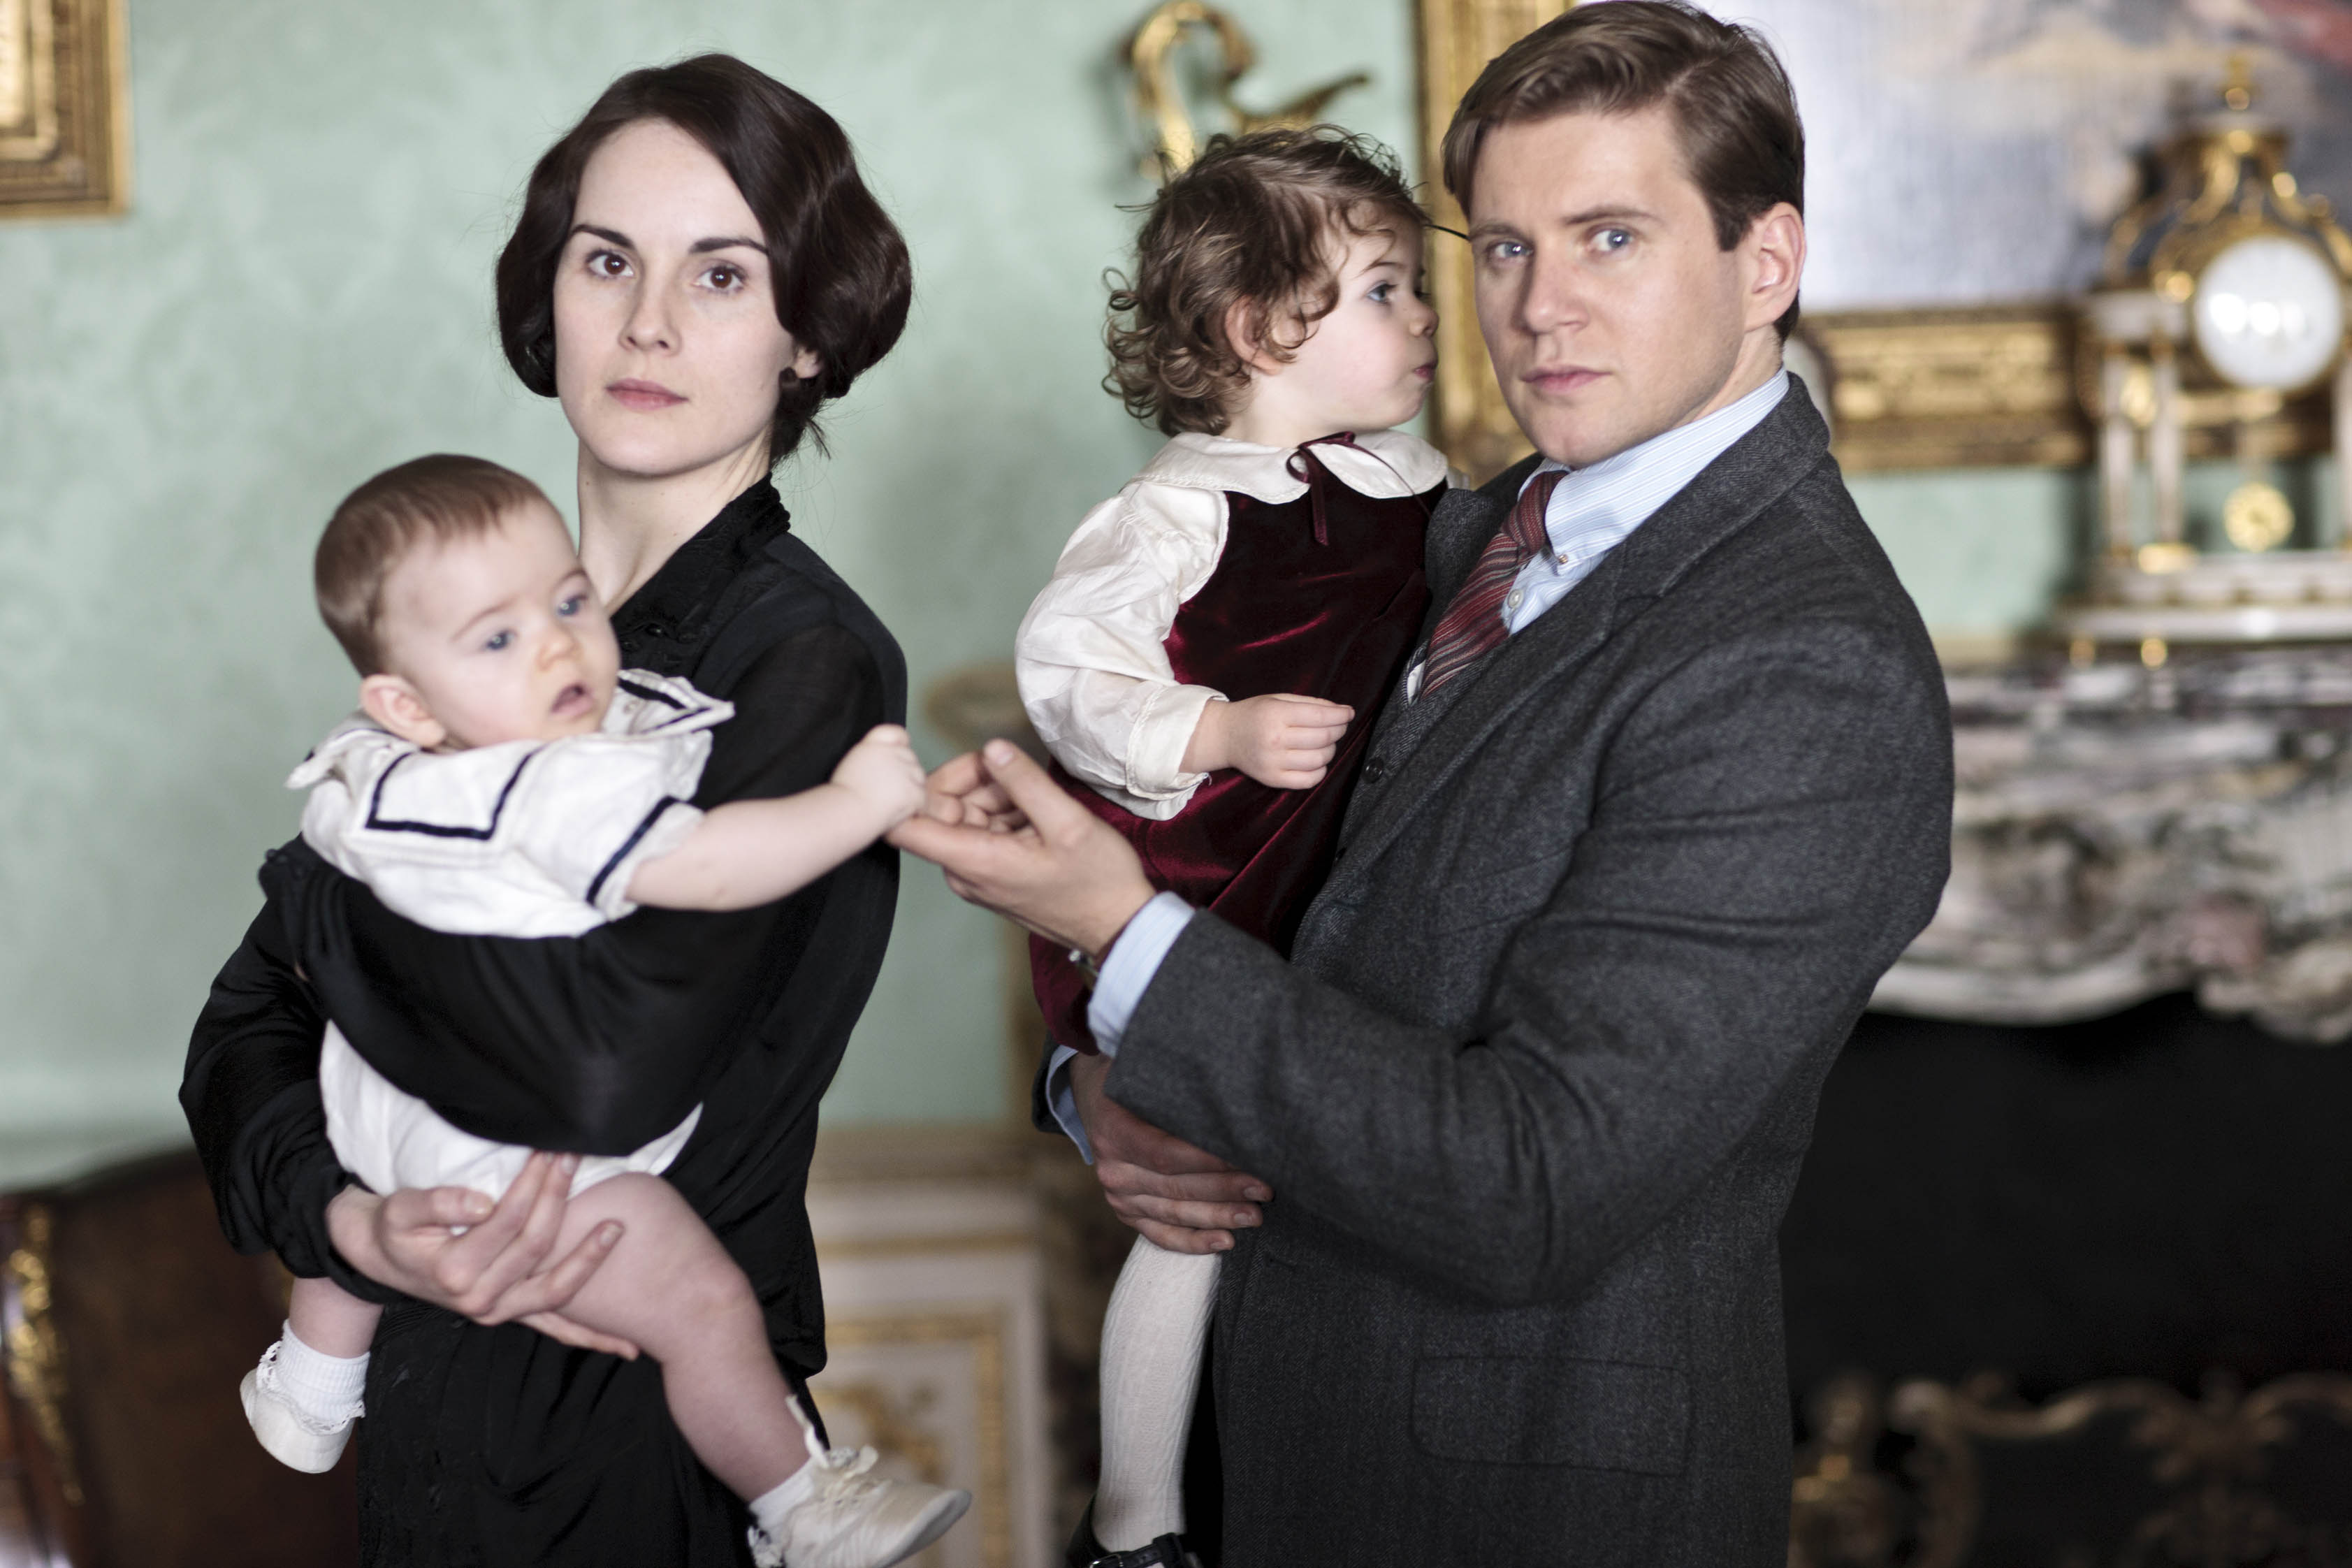 Television Programme: Downton Abbey with Michelle Dockery as Lady Mary with Baby George and Allen Leech as Tom Branson with baby Sybbie.